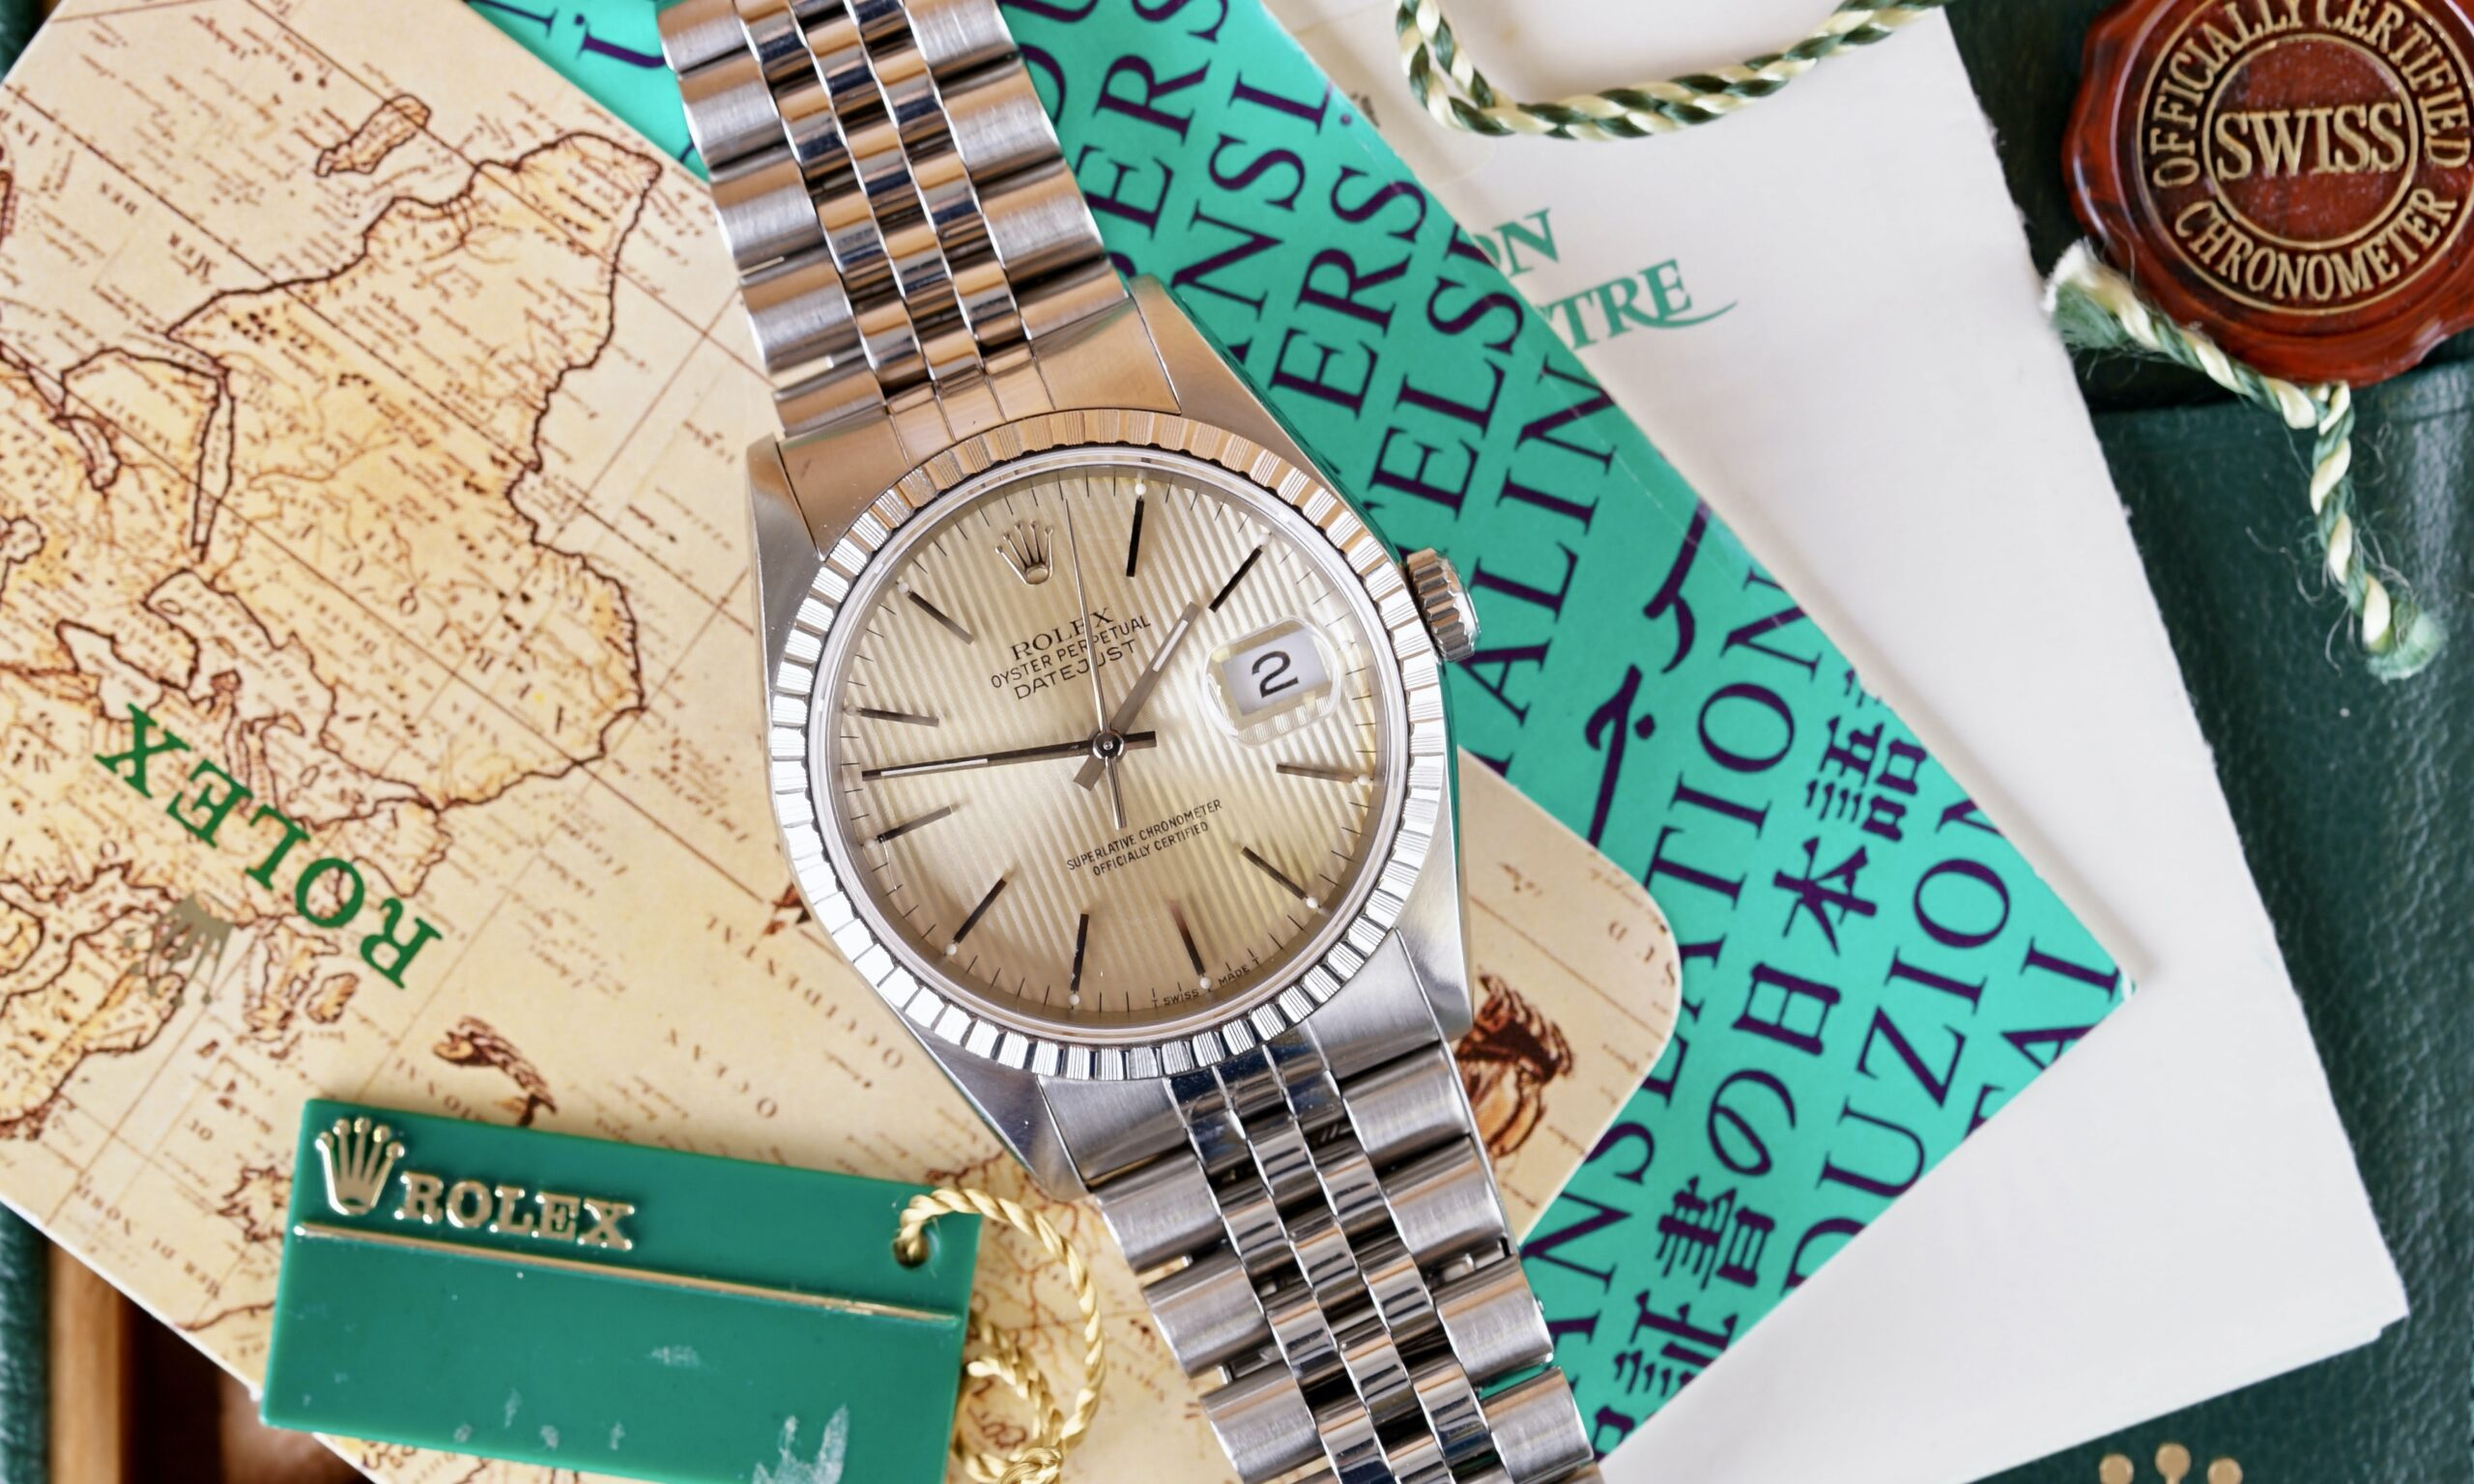 History of the Rolex Datejust